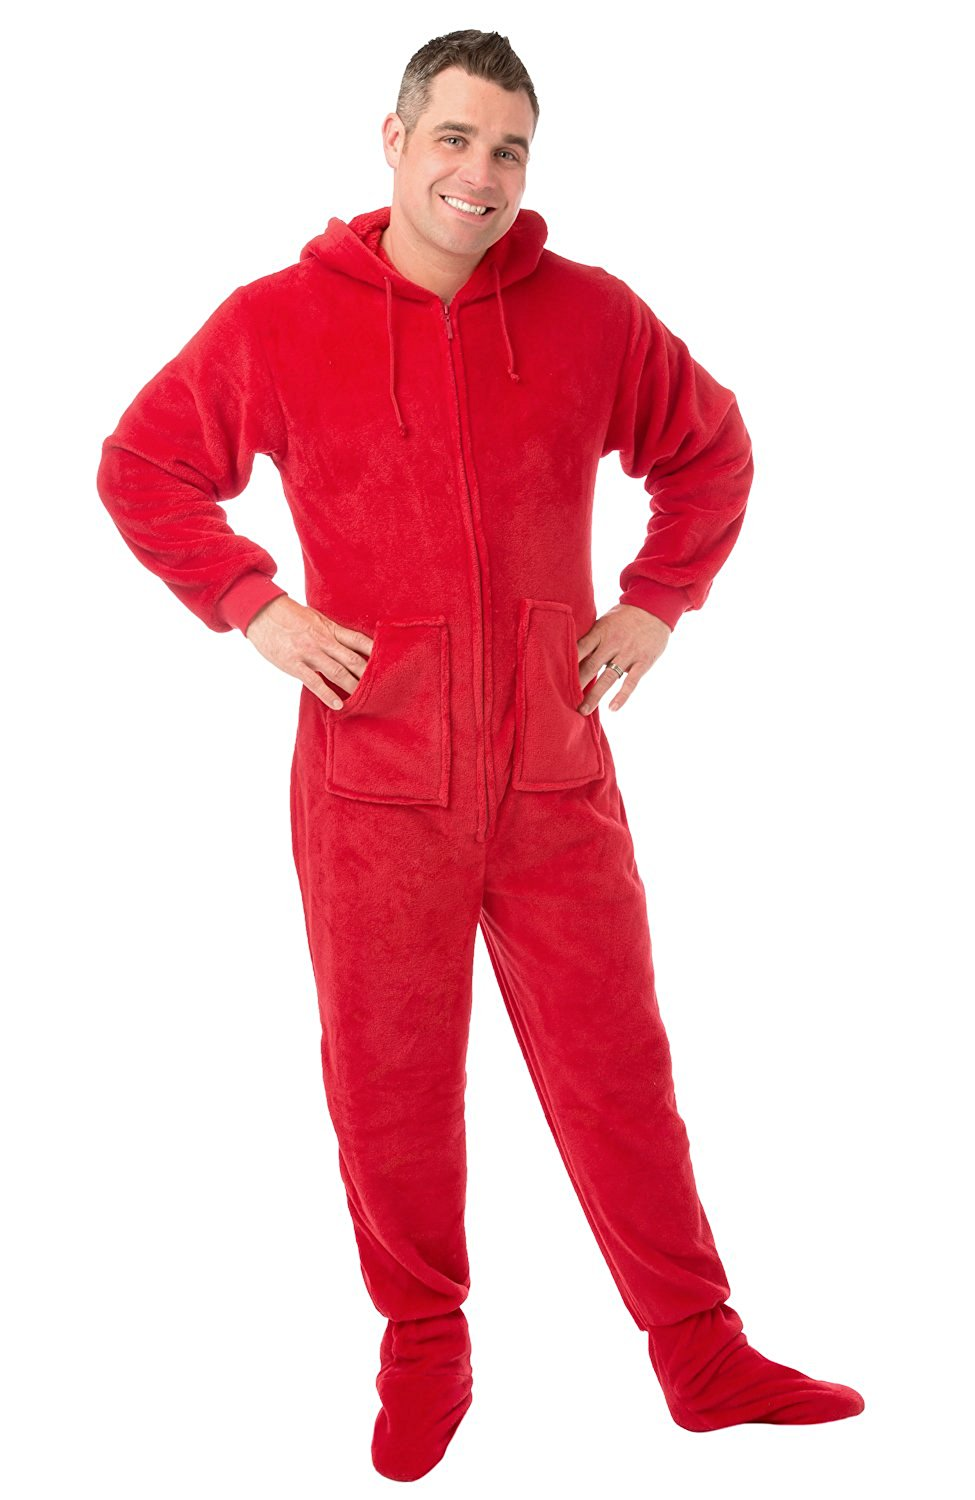 62f1853c7d Get Quotations · Big Feet Pjs Red Plush Onesie Adult Footed Pajamas with  Hood